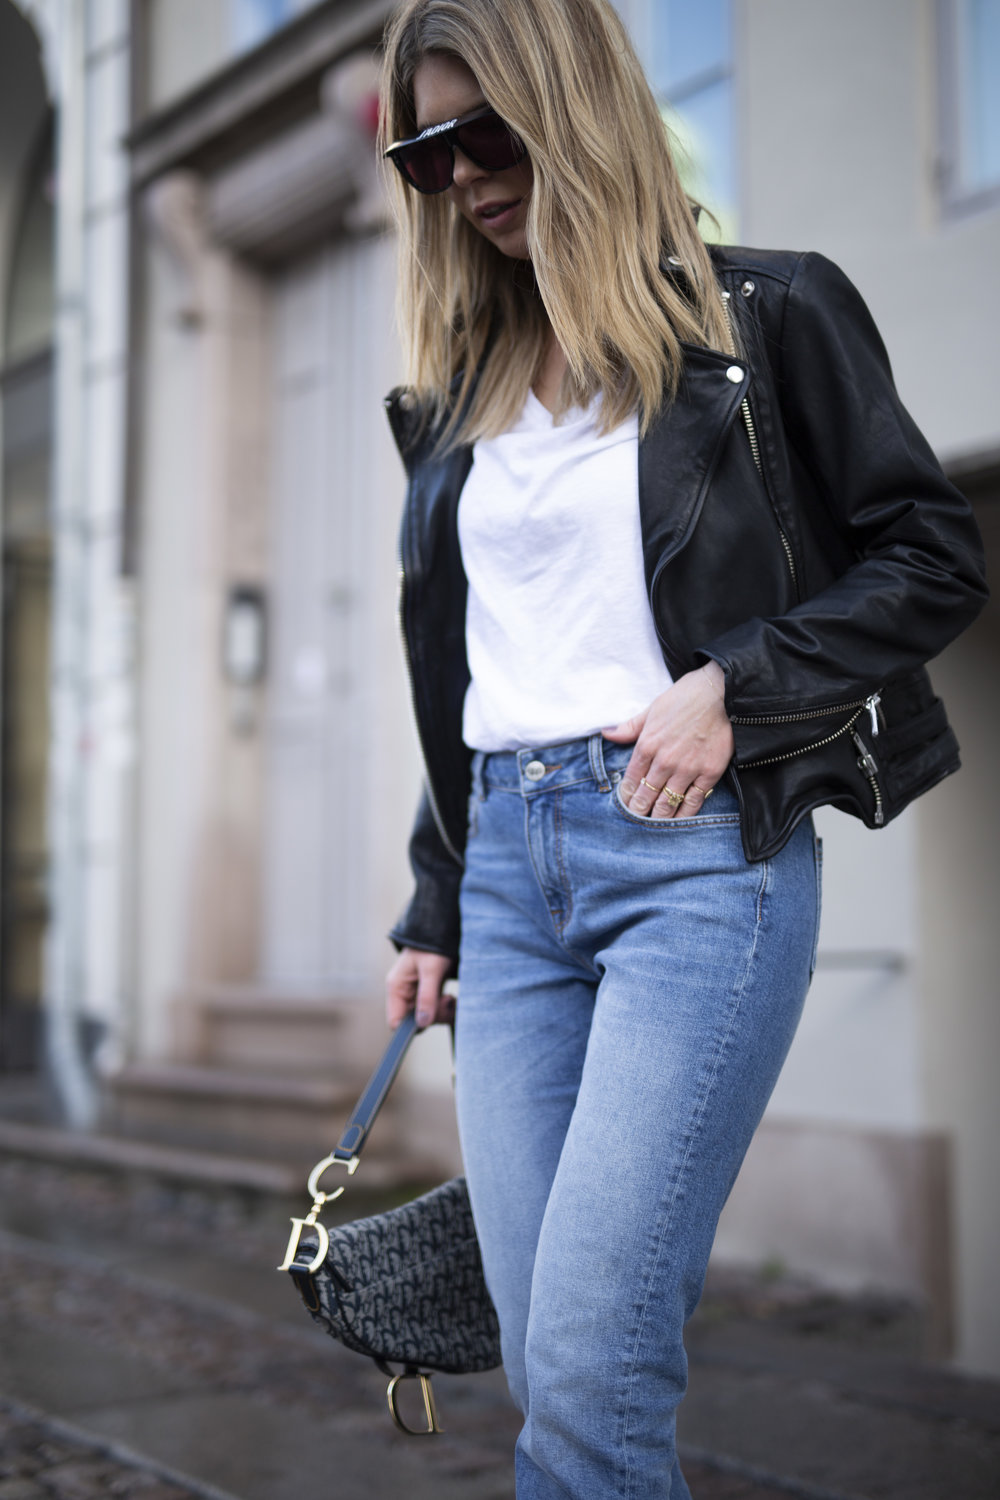 Cathrine Marie on the streets of Copenhagen wearing Denim Hunter jeans and white T-shirt